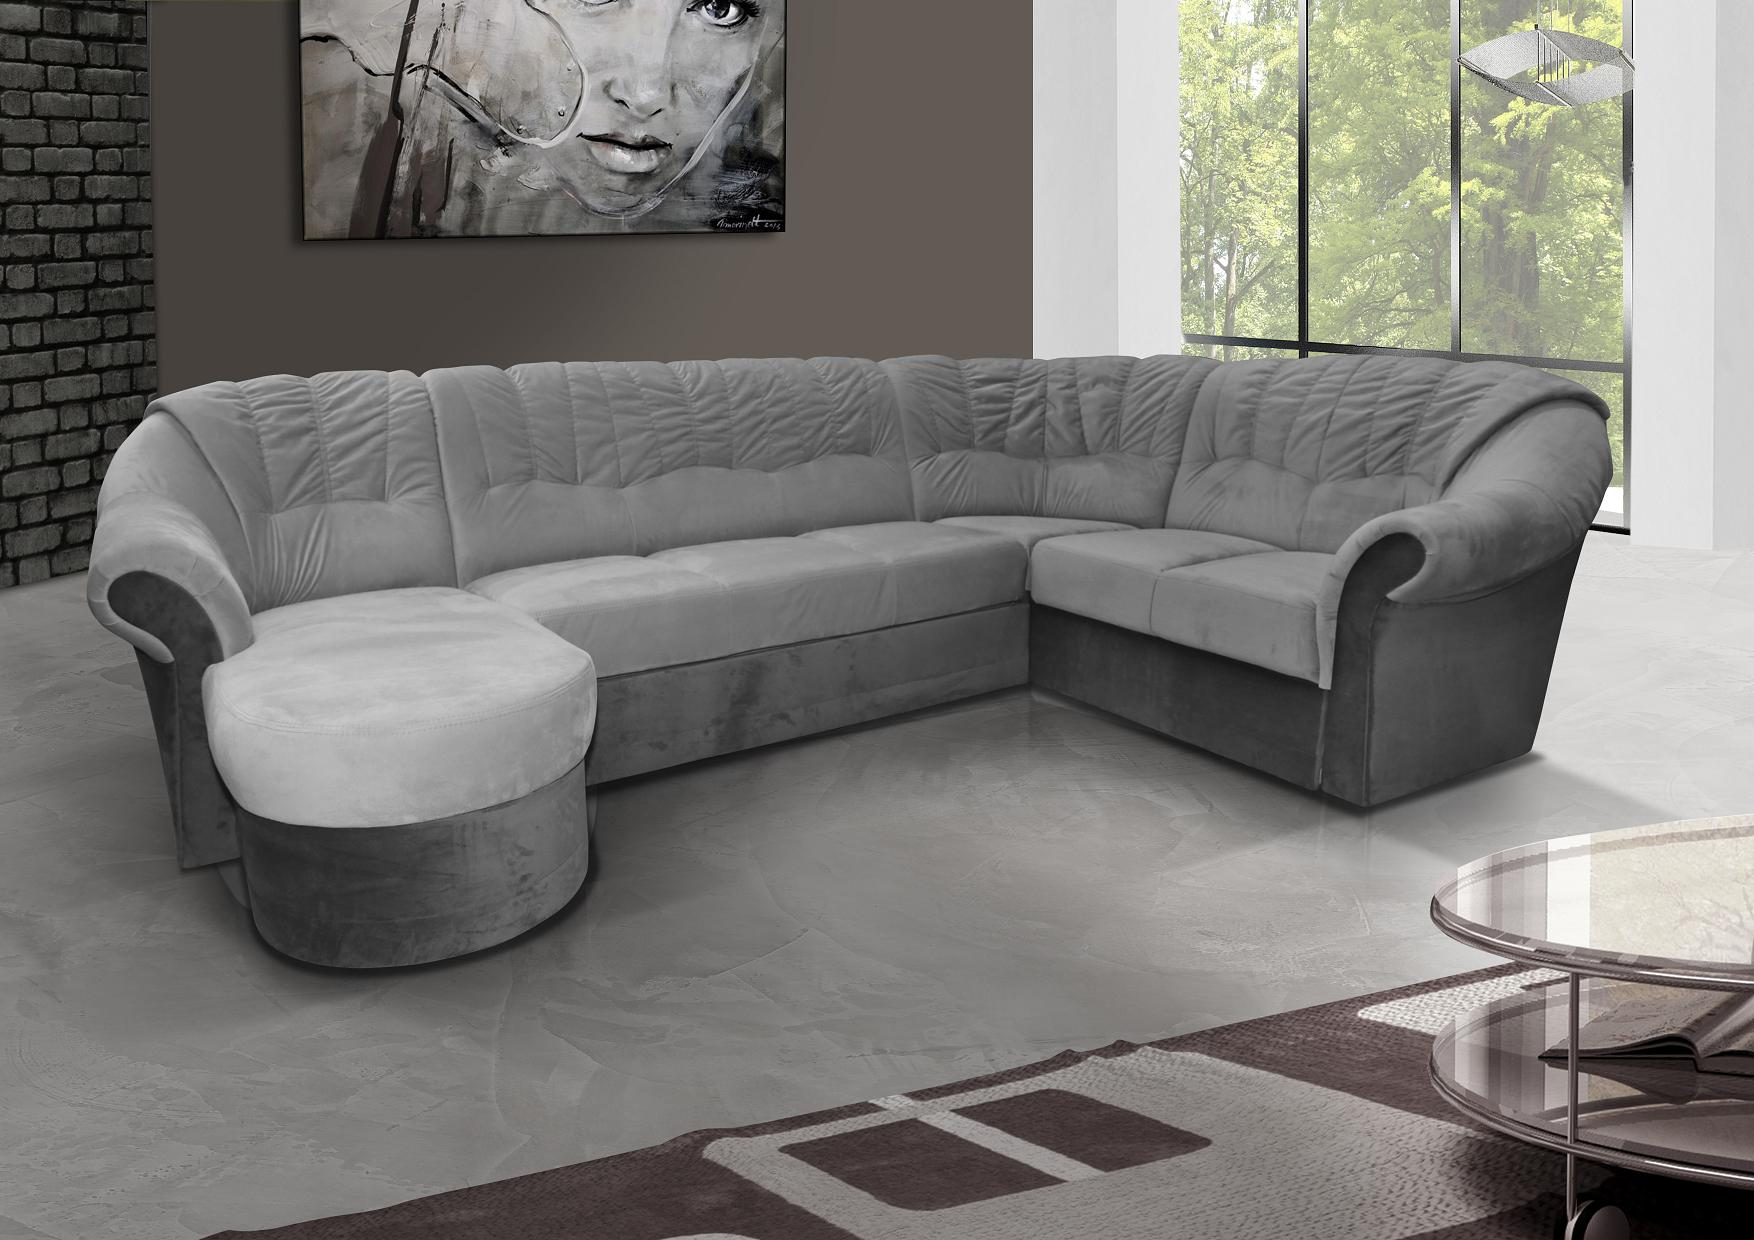 eckcouch mit schlaffunktion ecksofa couch wohnlandschaft u form grau frio 2 ebay. Black Bedroom Furniture Sets. Home Design Ideas